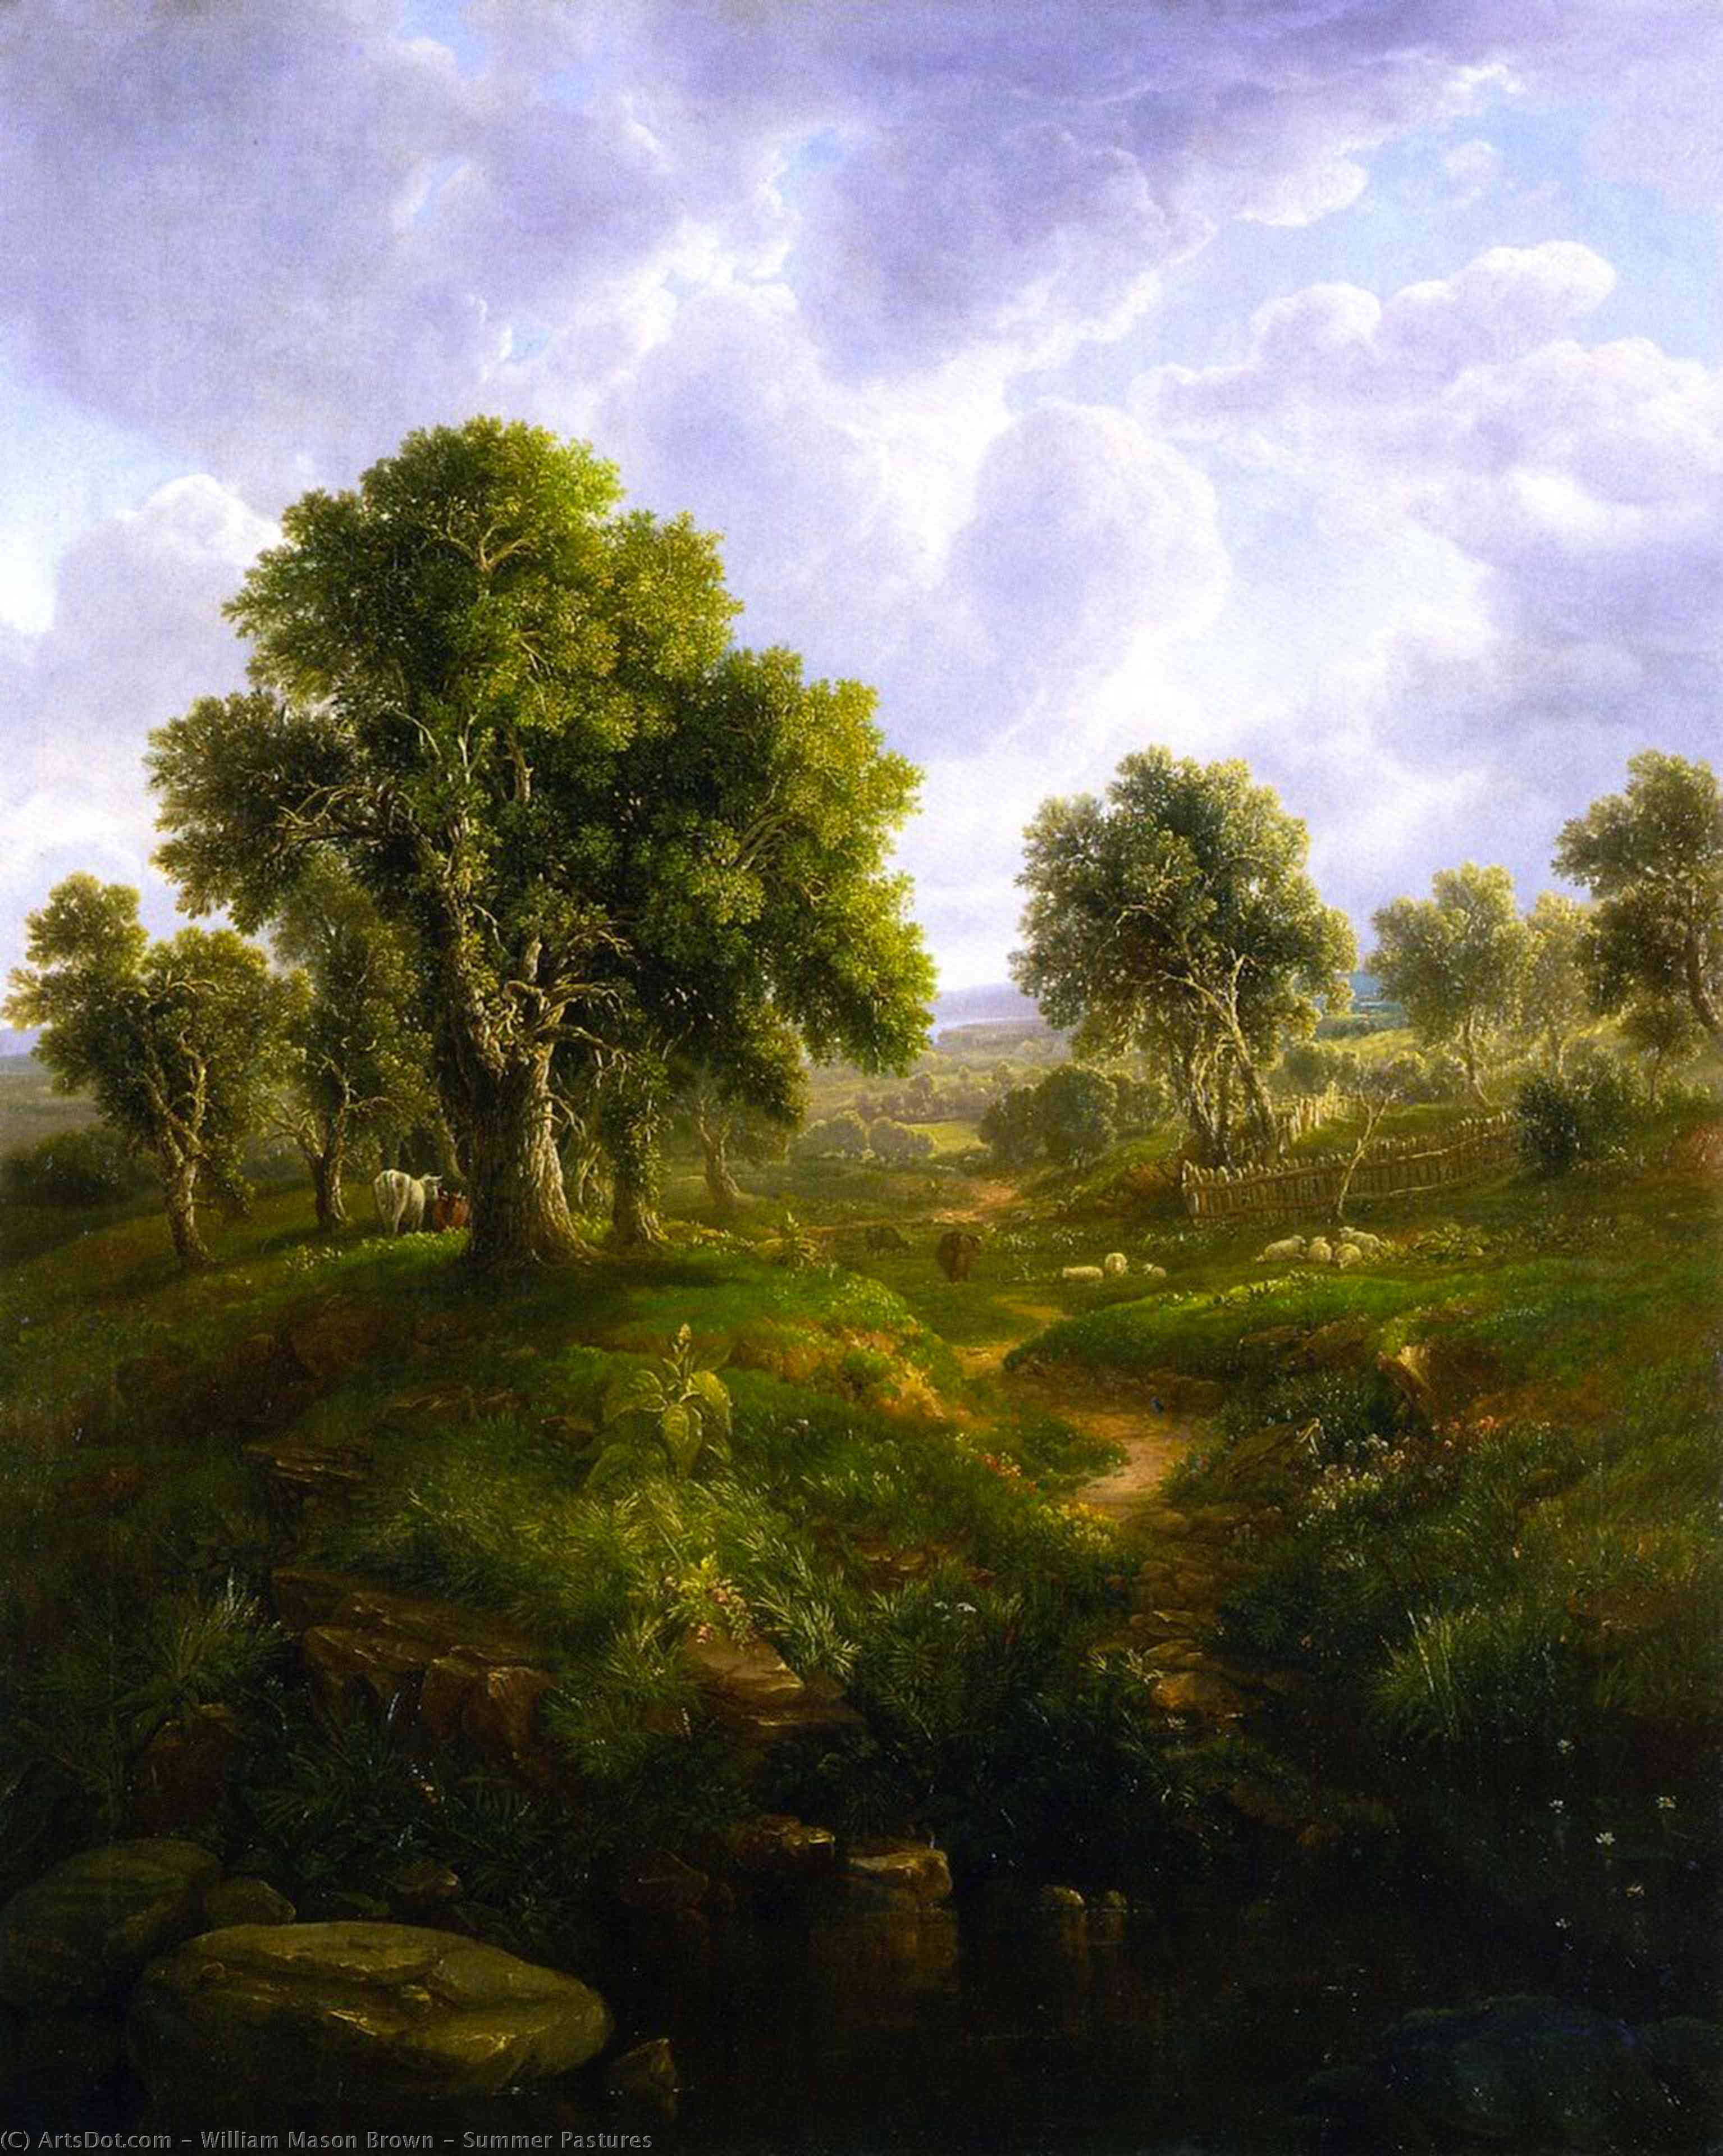 Summer Pastures, Oil On Canvas by William Mason Brown (1828-1898, United States)